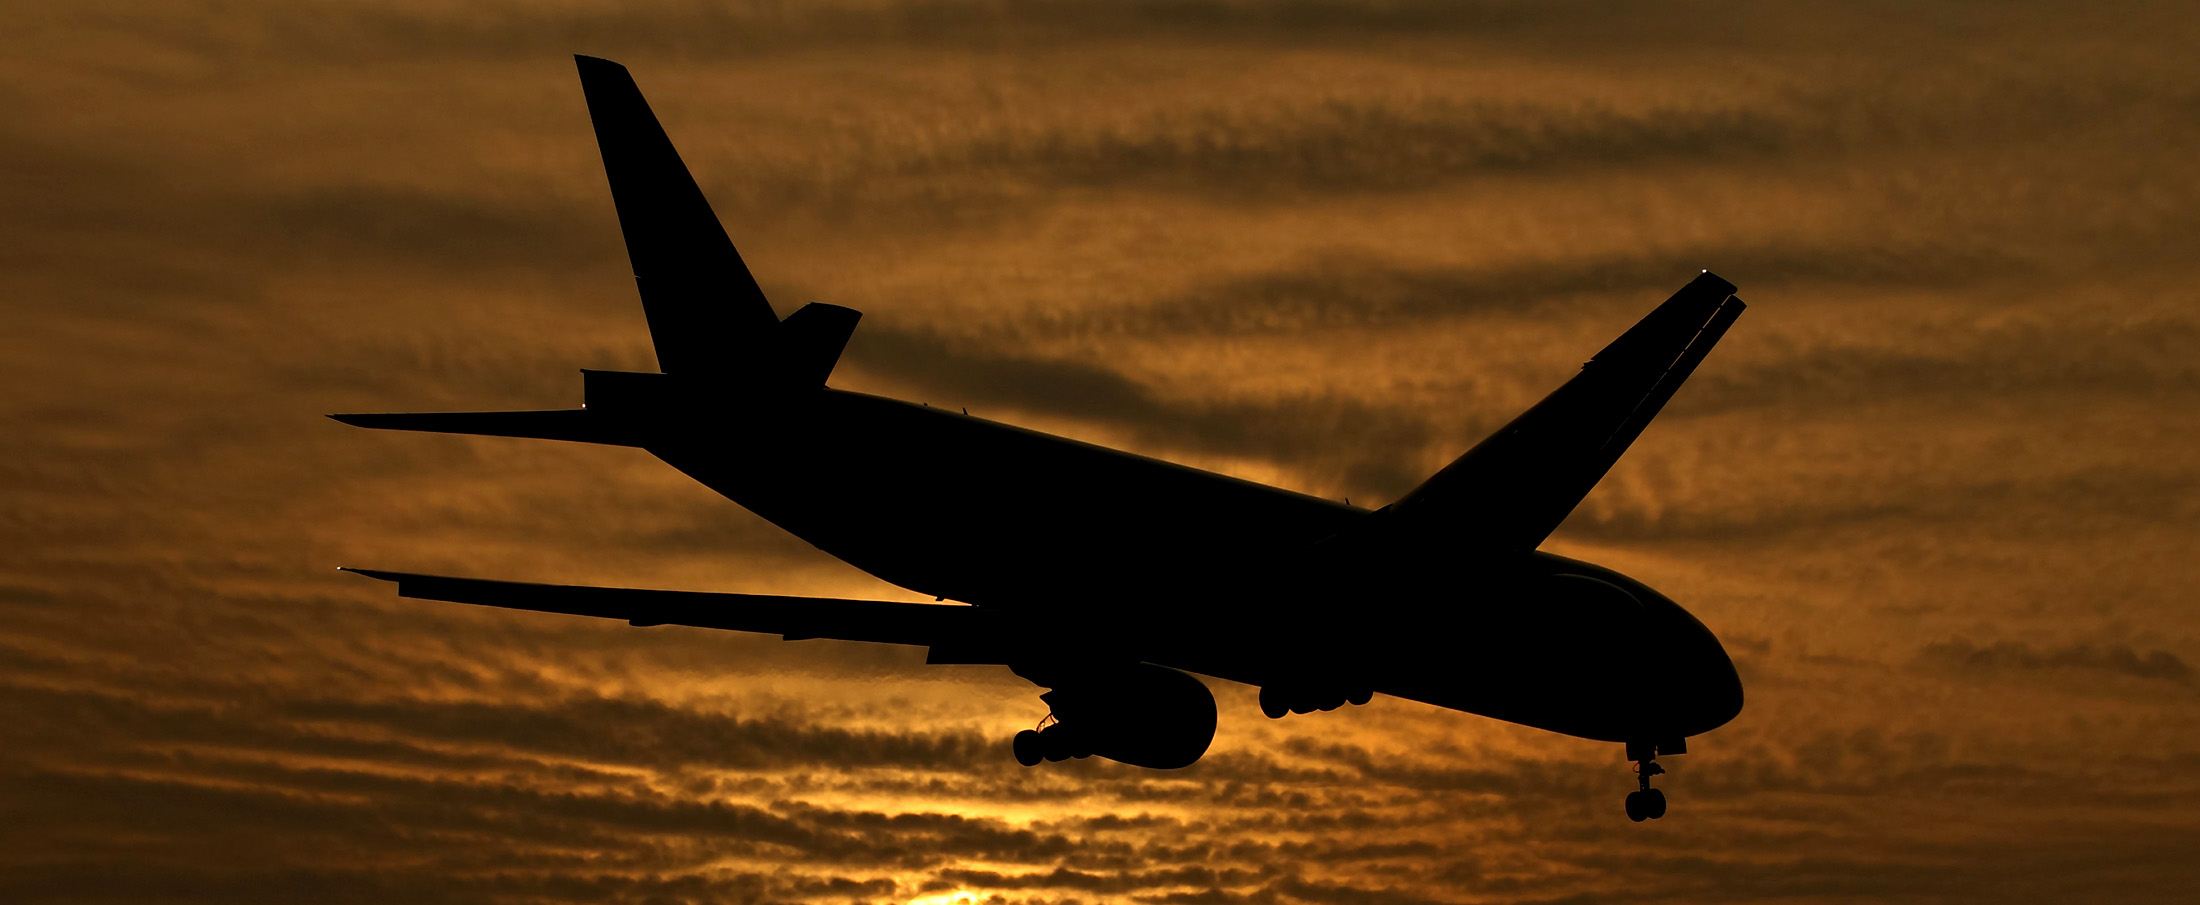 bloomberg.com - Theophilos Argitis - Canadian Inflation Unexpectedly Accelerates on Airfare Surge